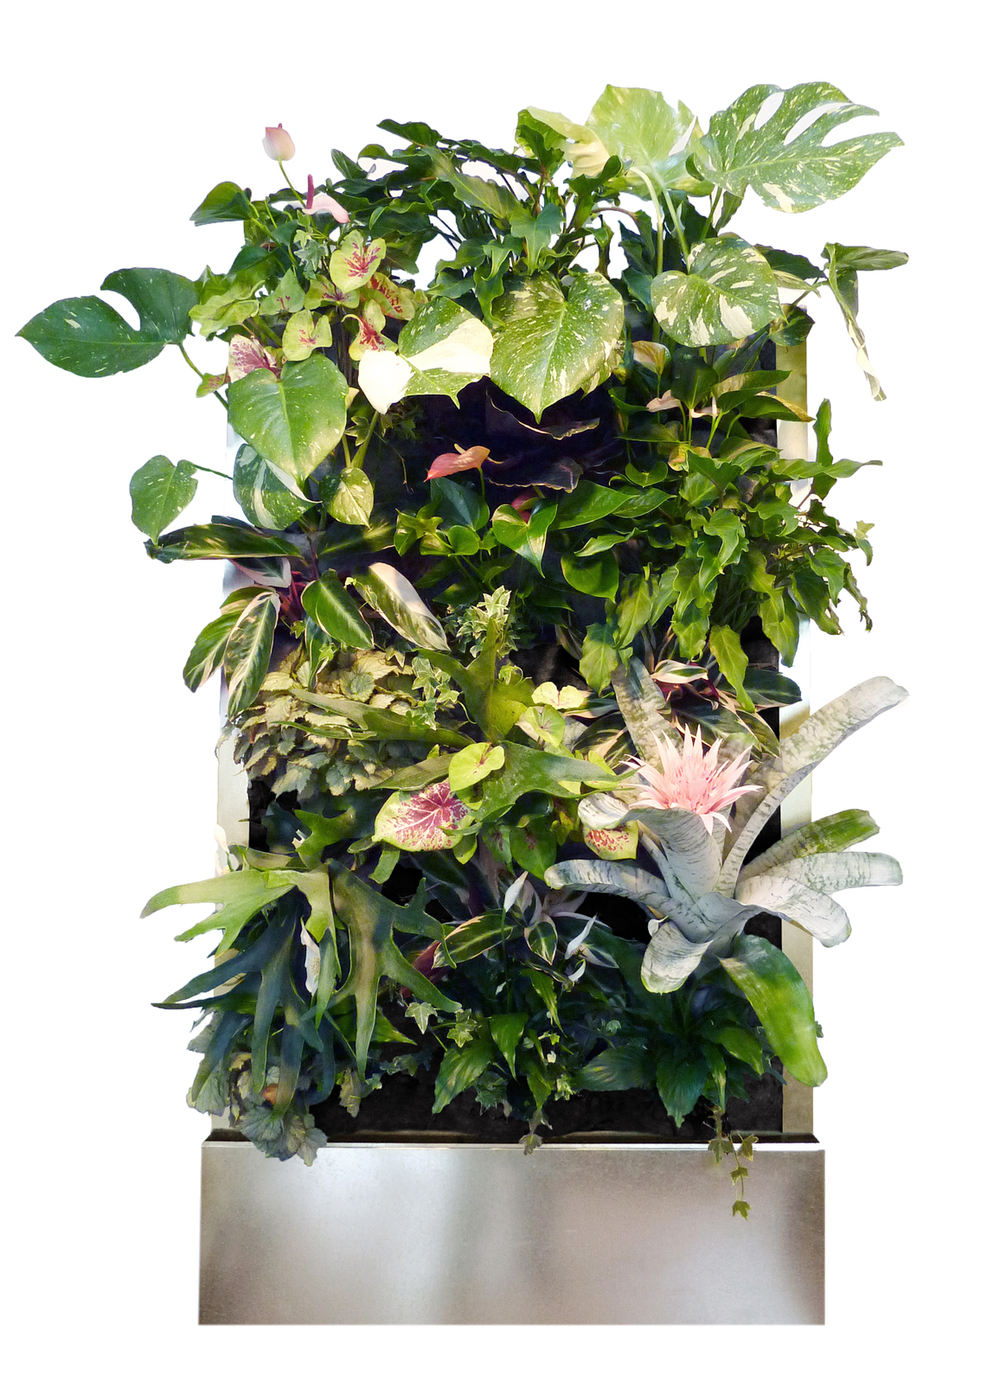 Florafelt Recirc-24 Wall-mount Vertical Garden Unit